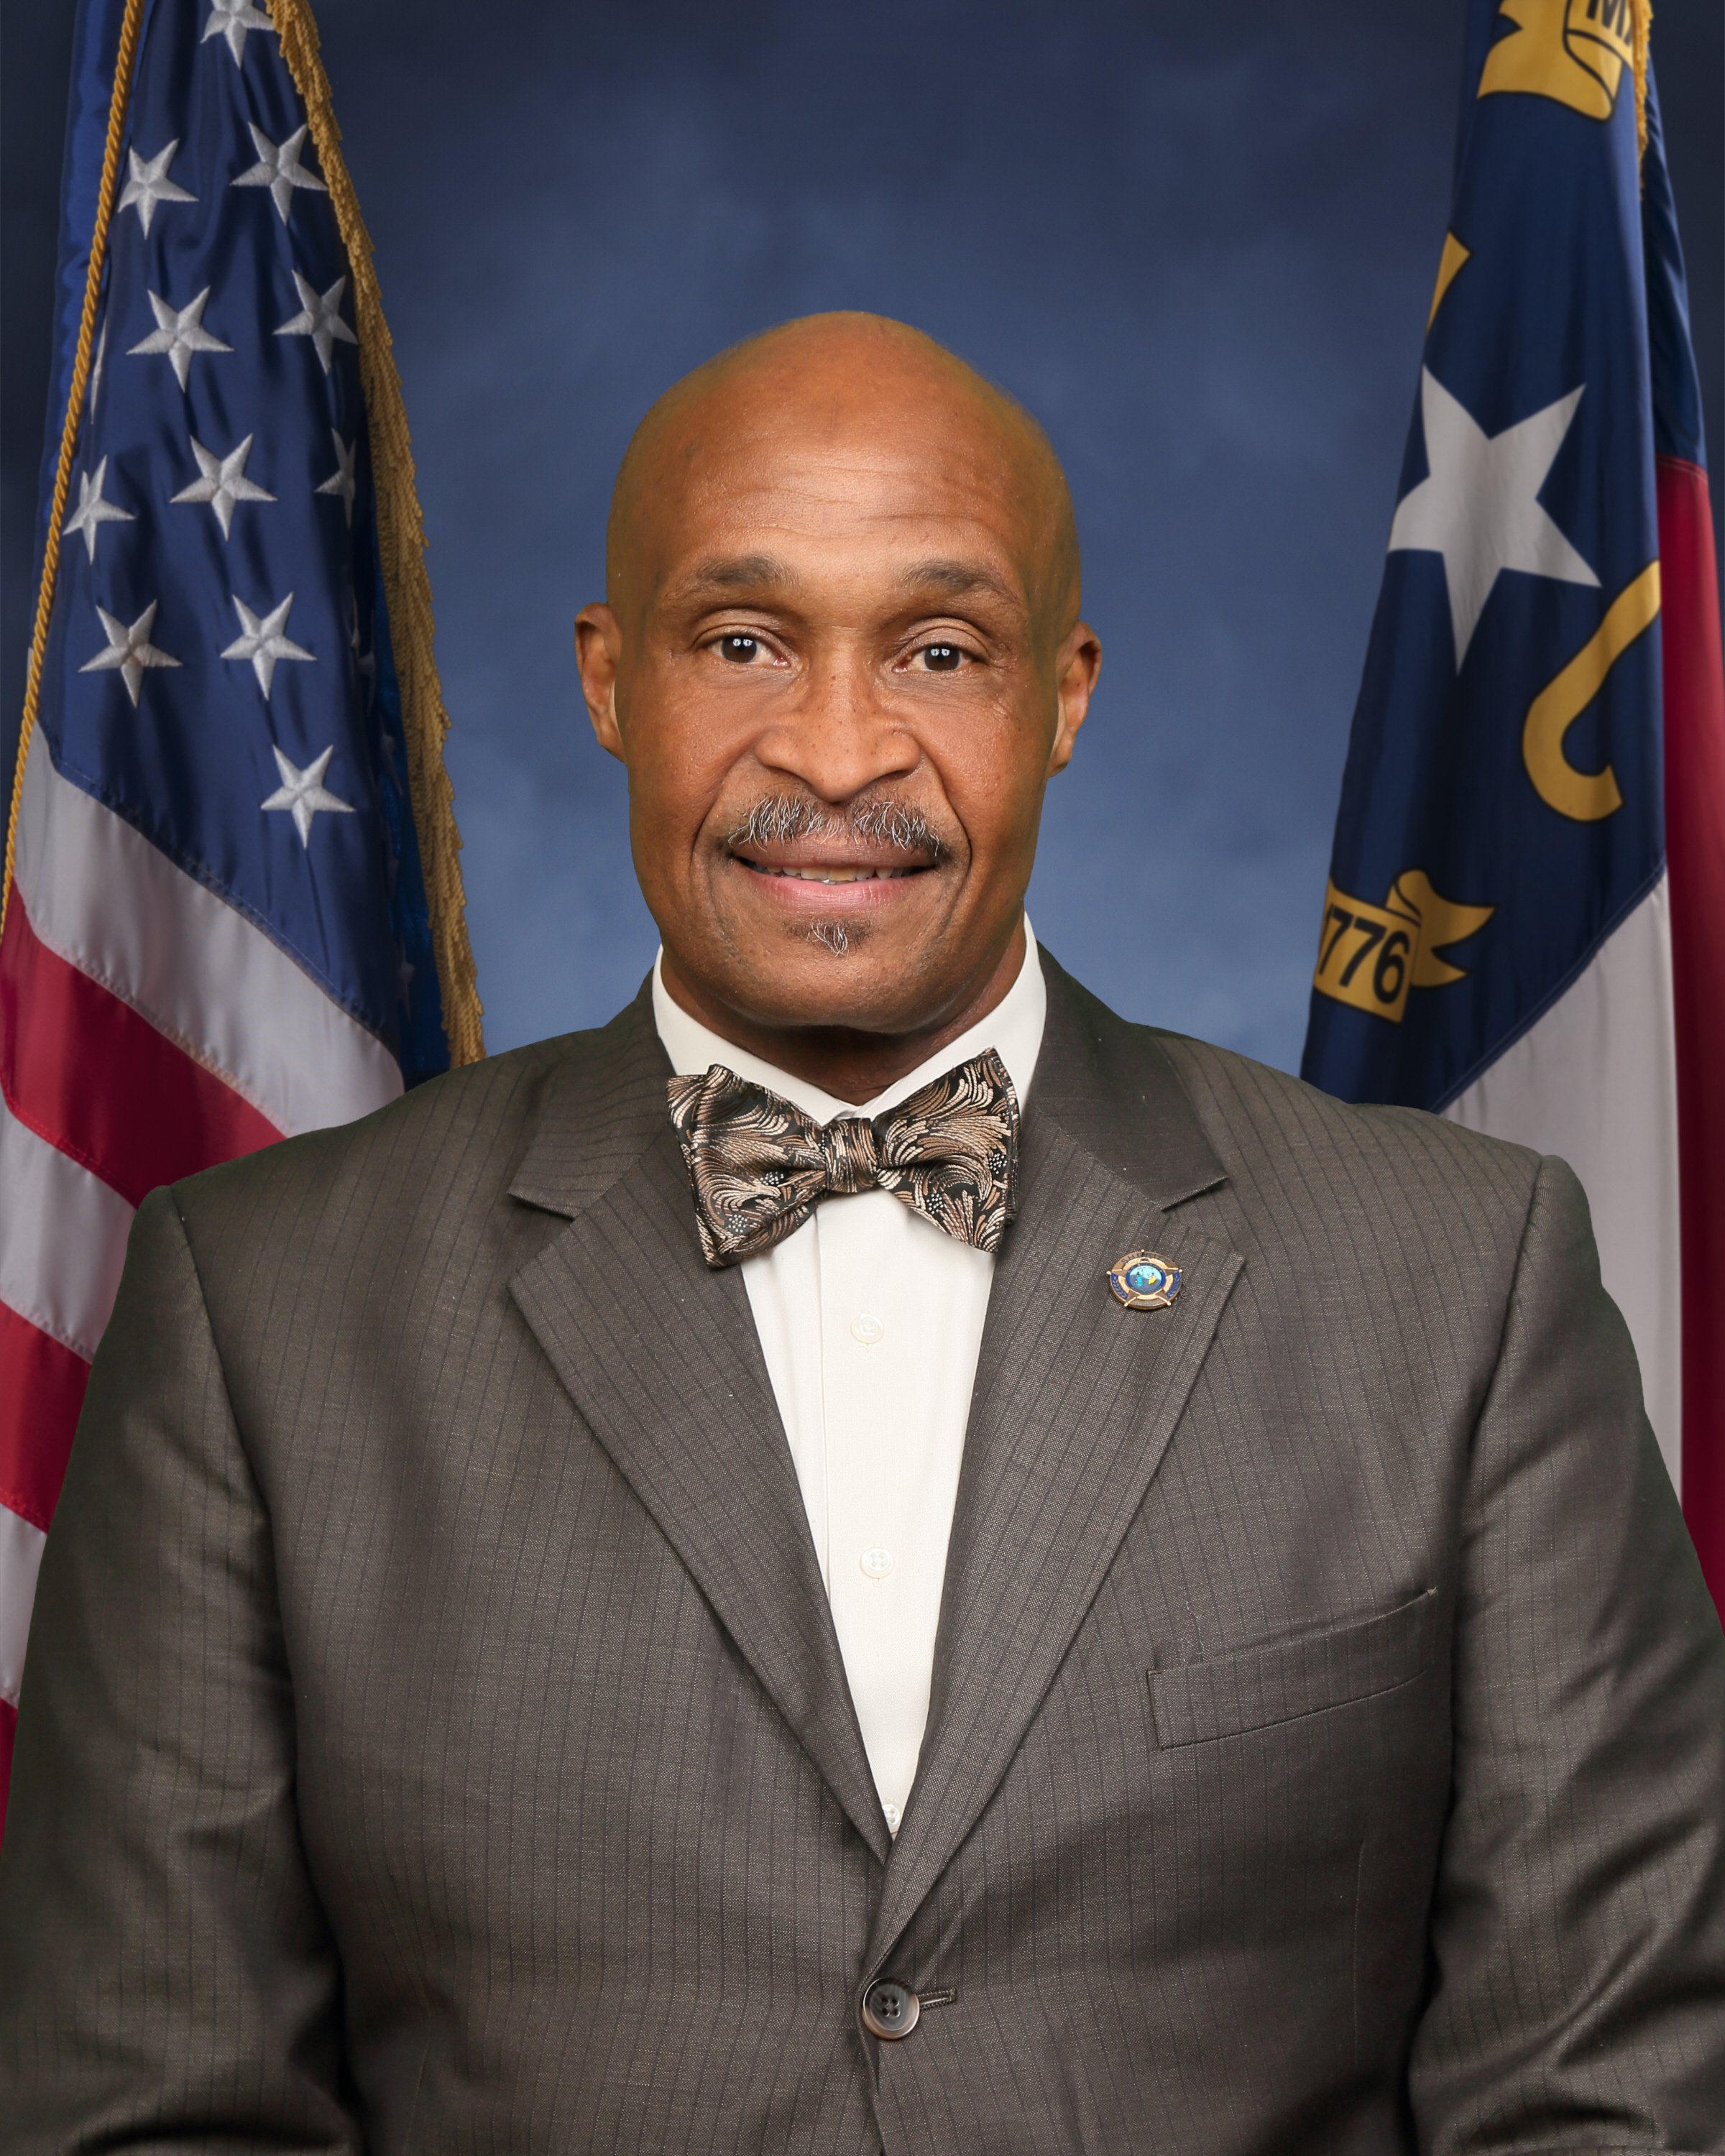 Sheriff James E. Clemmons, Jr. Richmond County